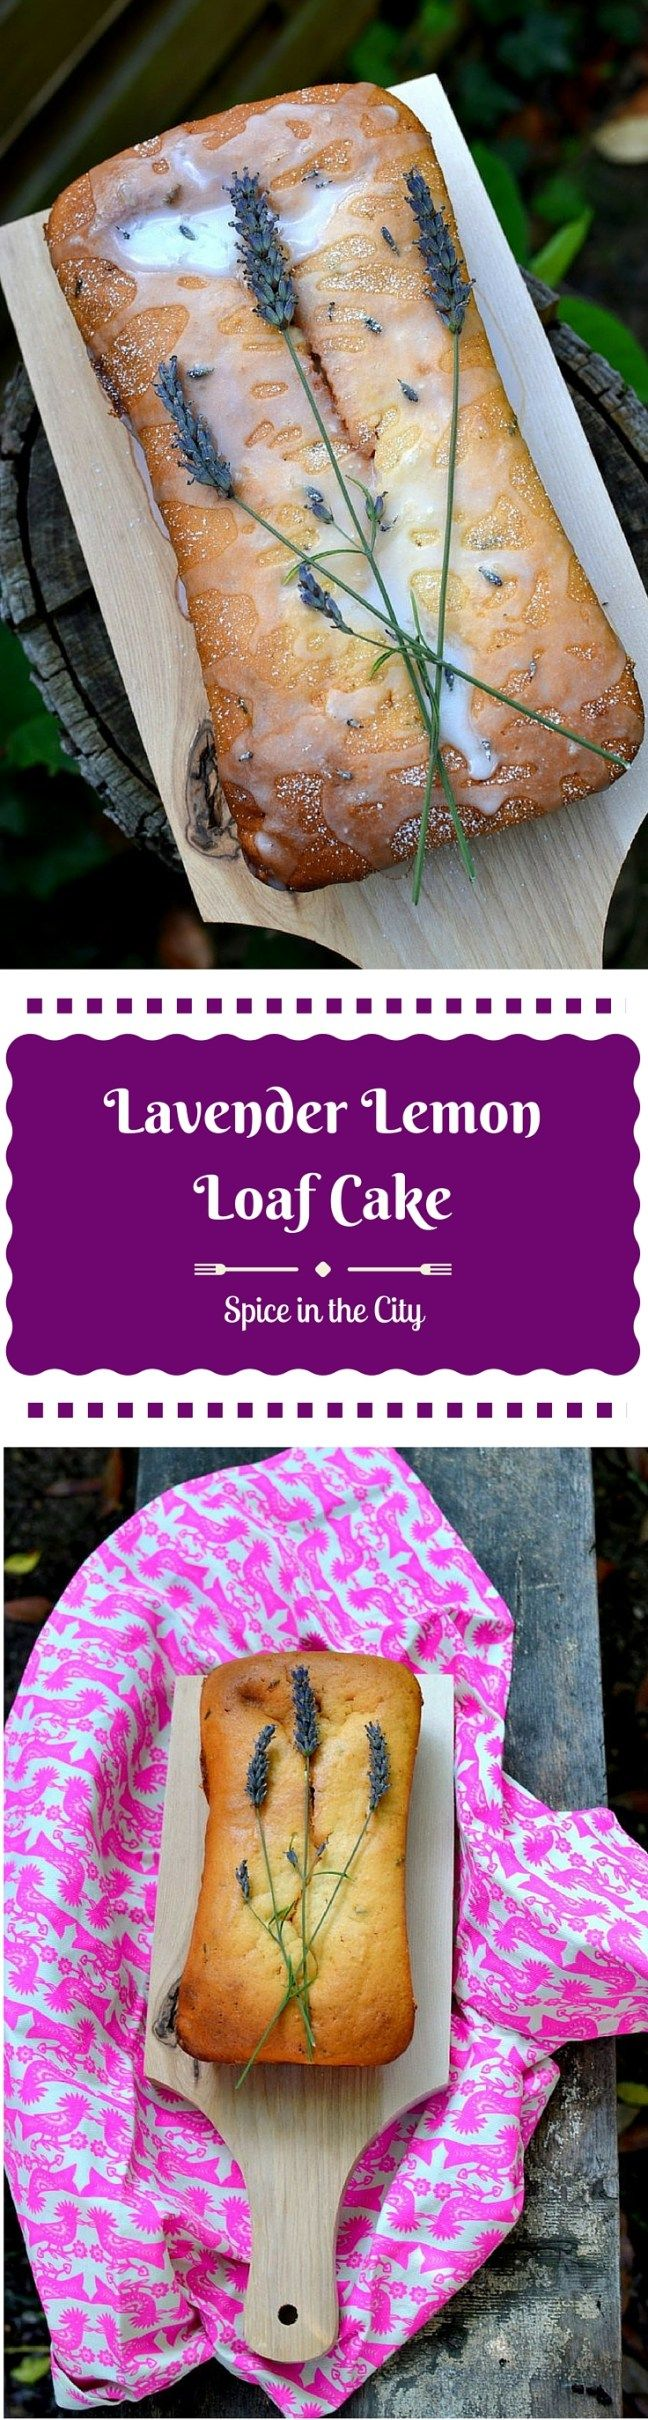 Floral Adventures: Lavender Lemon Loaf Cake - Spice in the City